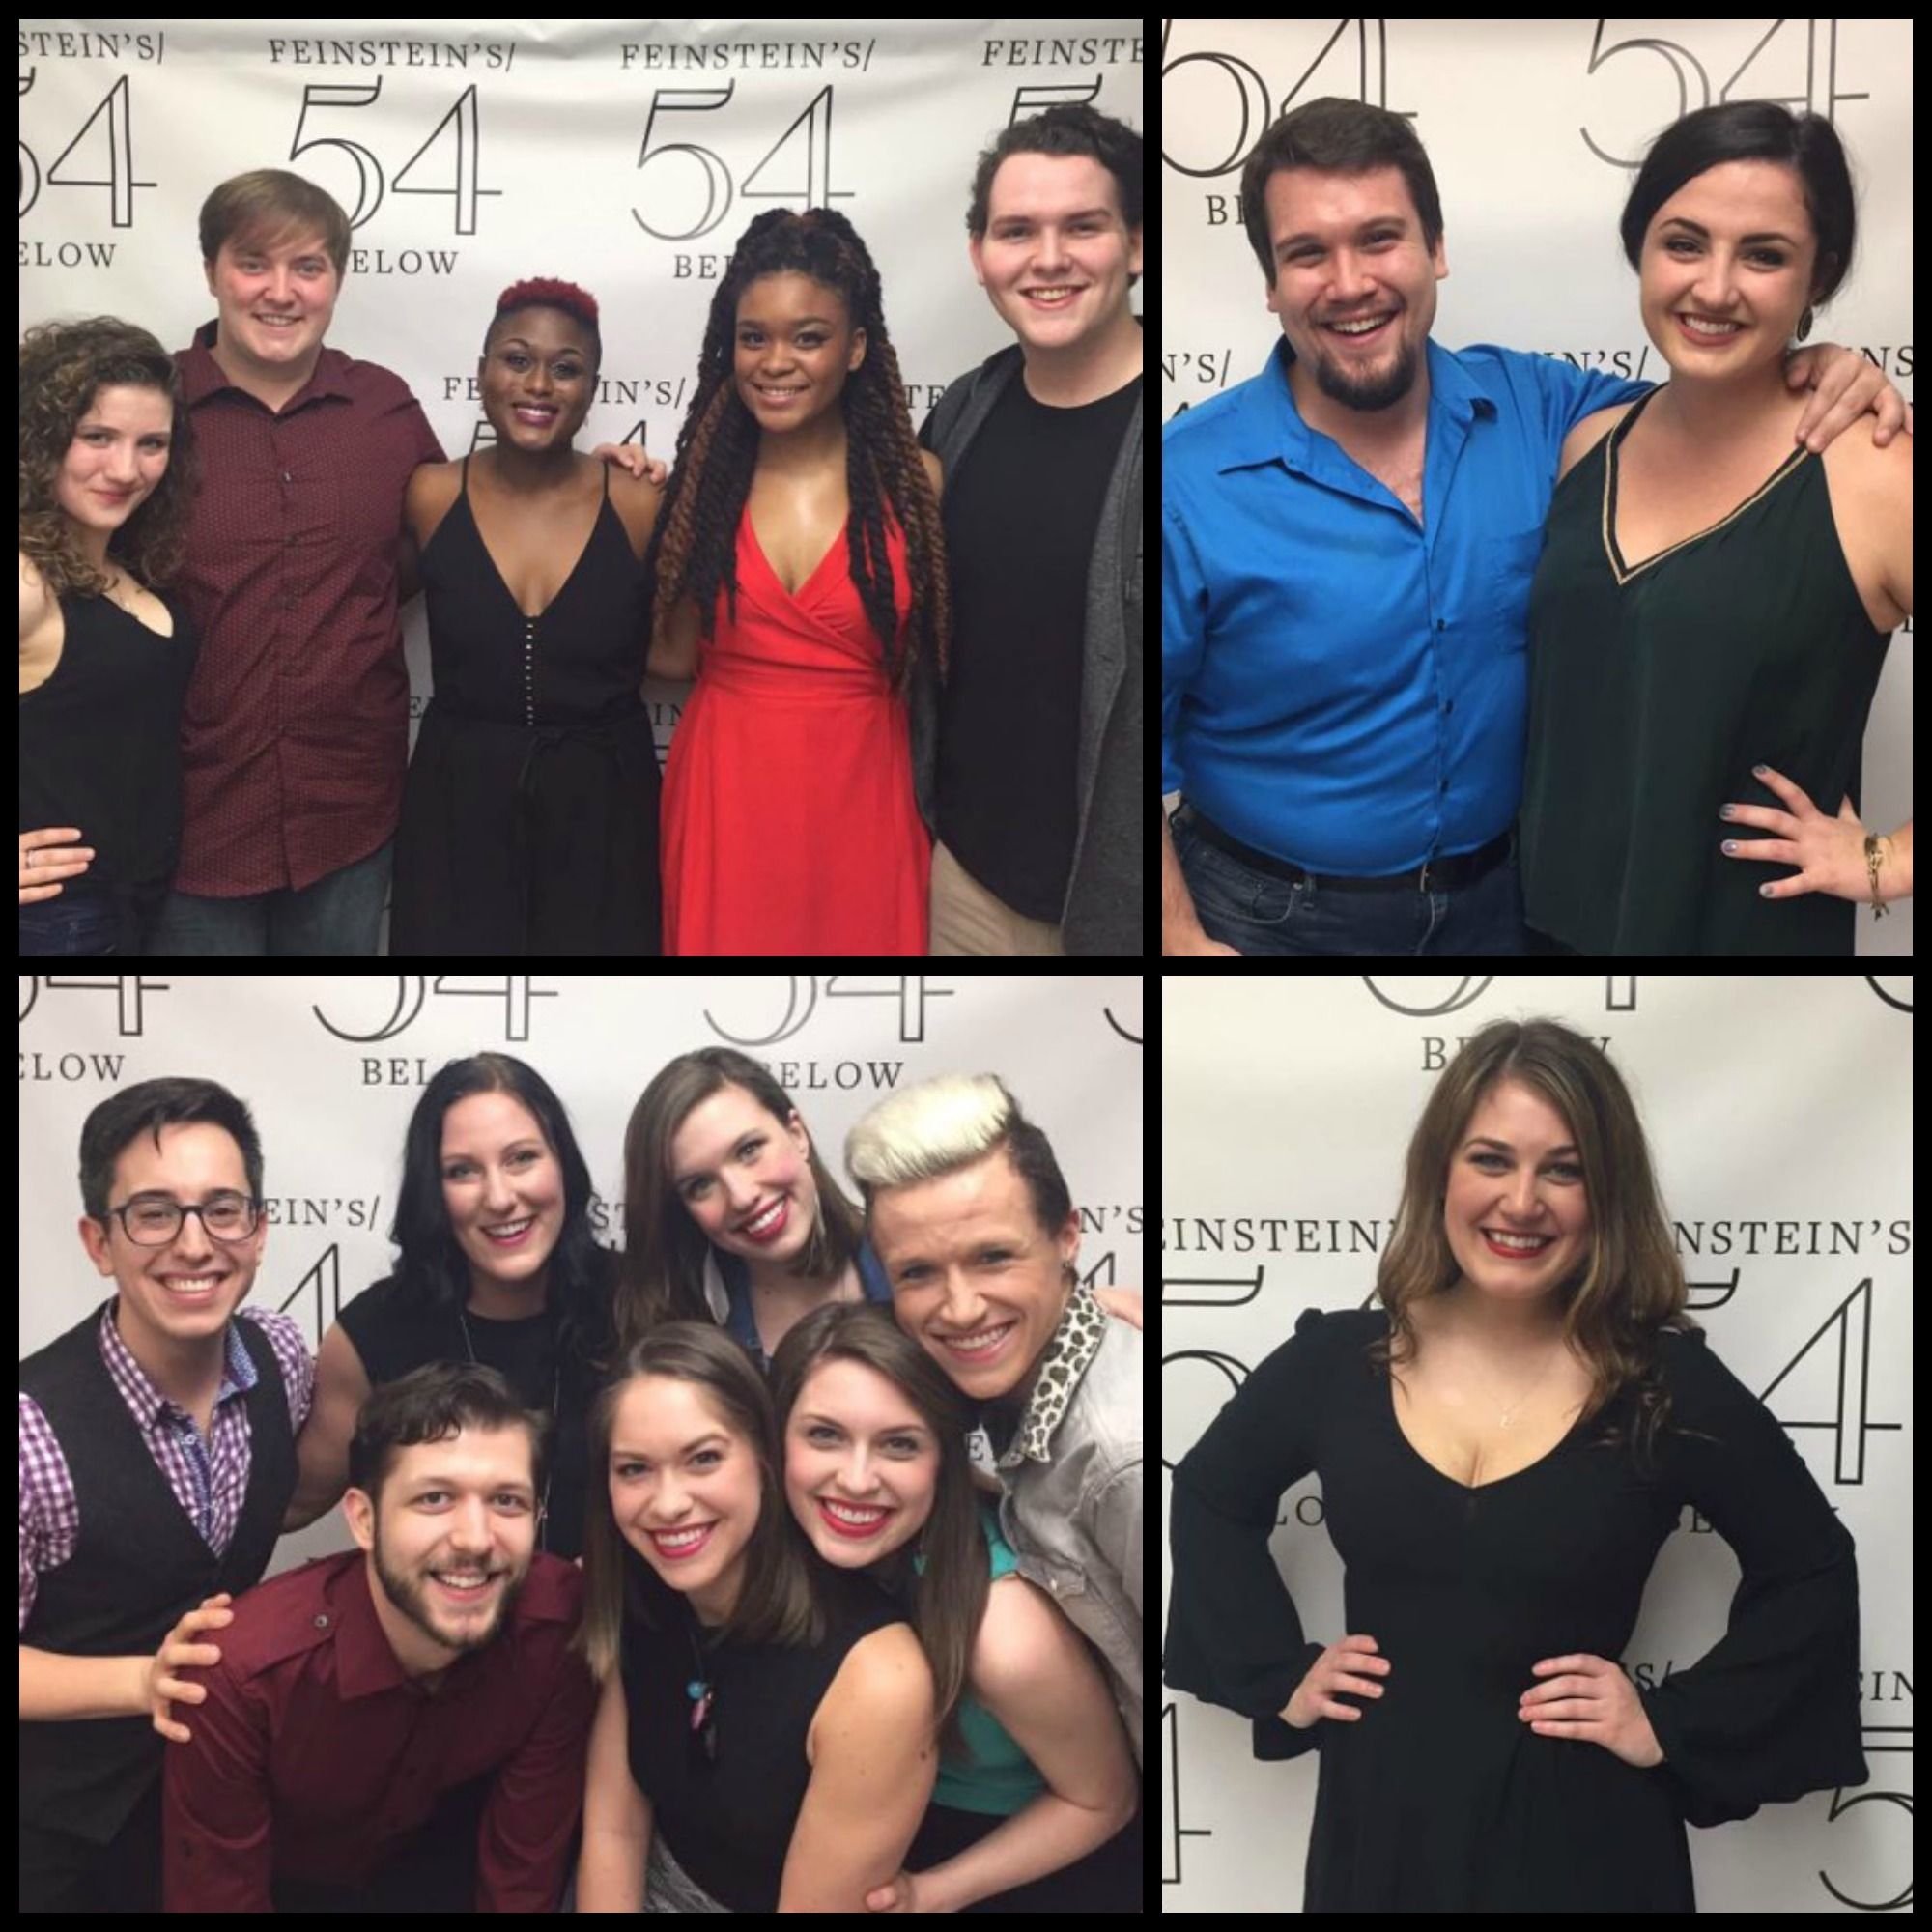 Alumni from the classes of 2015, 2014, and 2013 performed at 54 Below